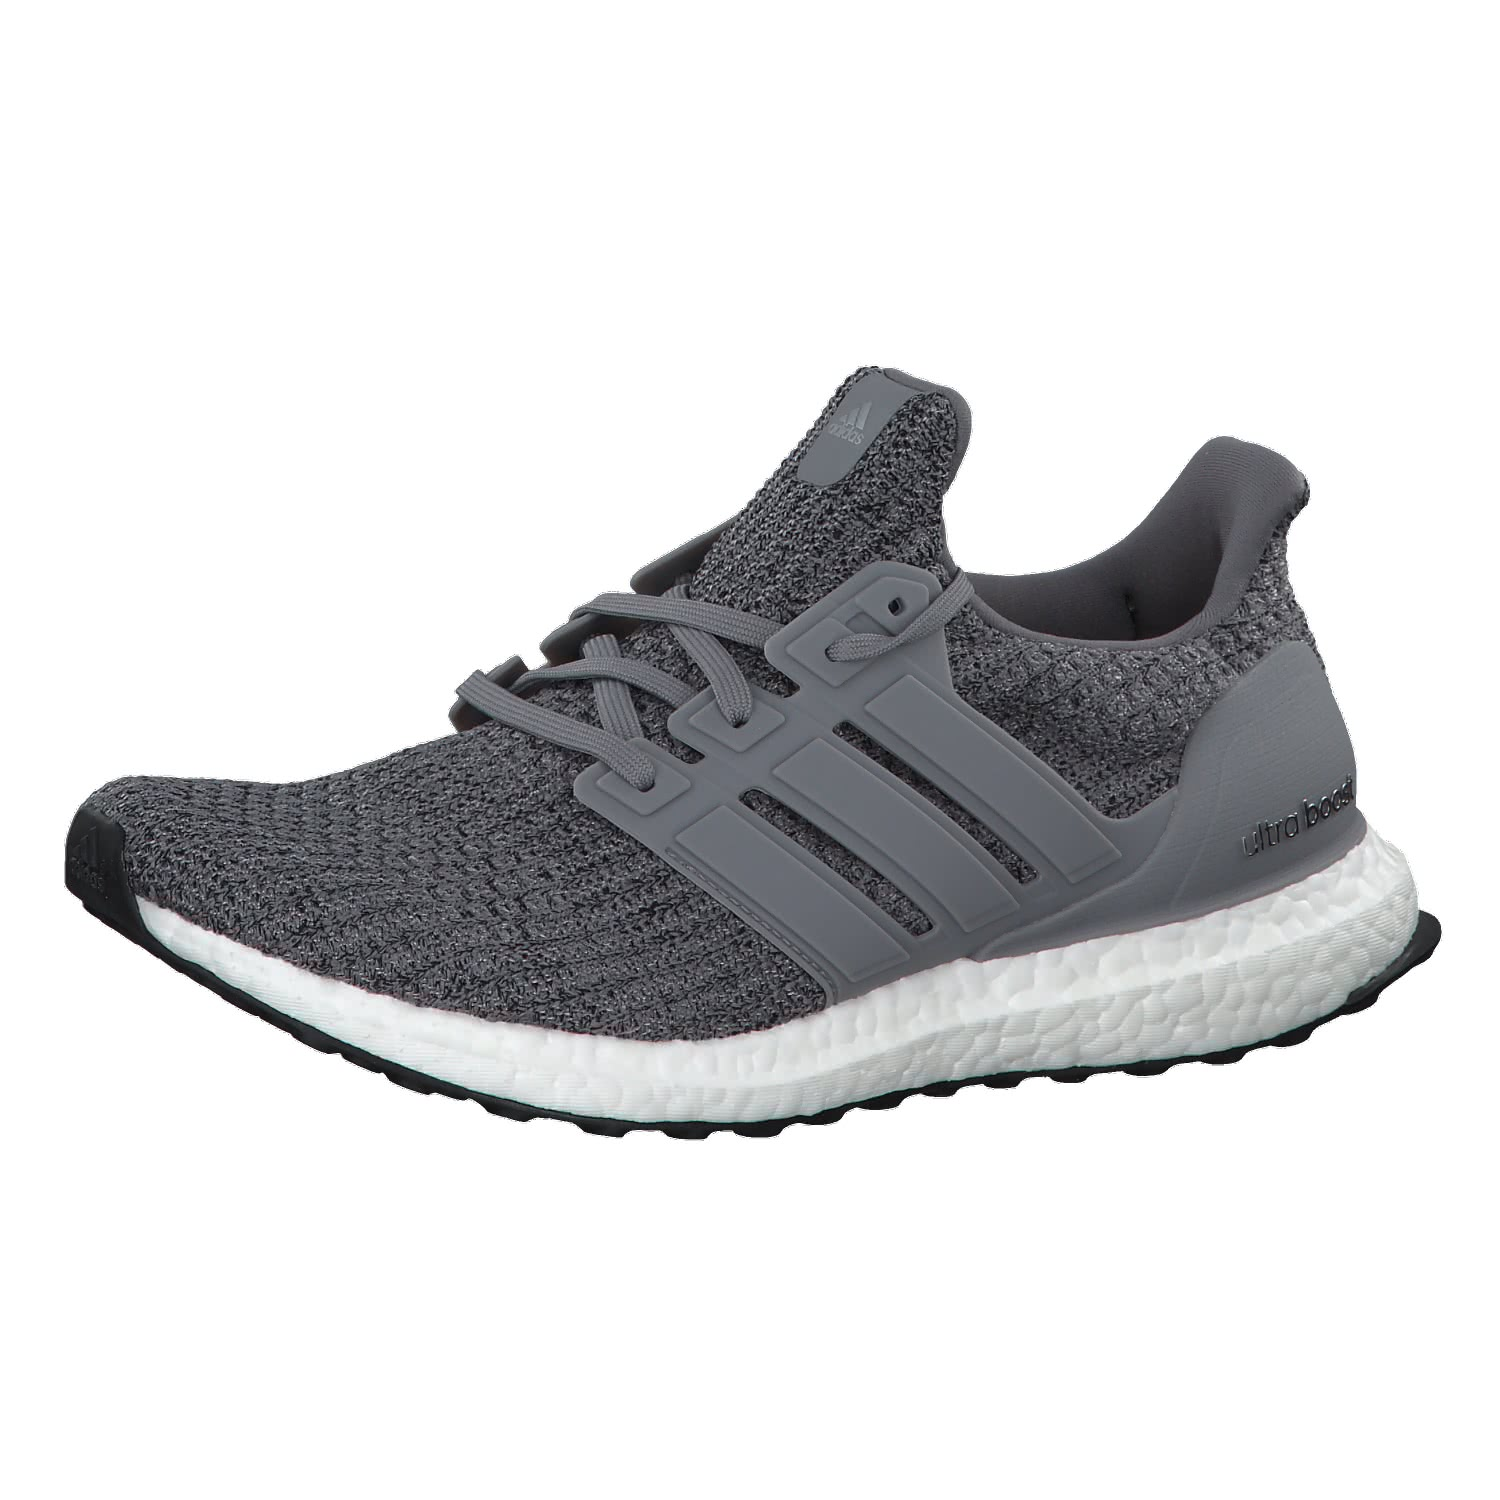 adidas Herren Laufschuhe UltraBOOST F36156 41 13 grey three